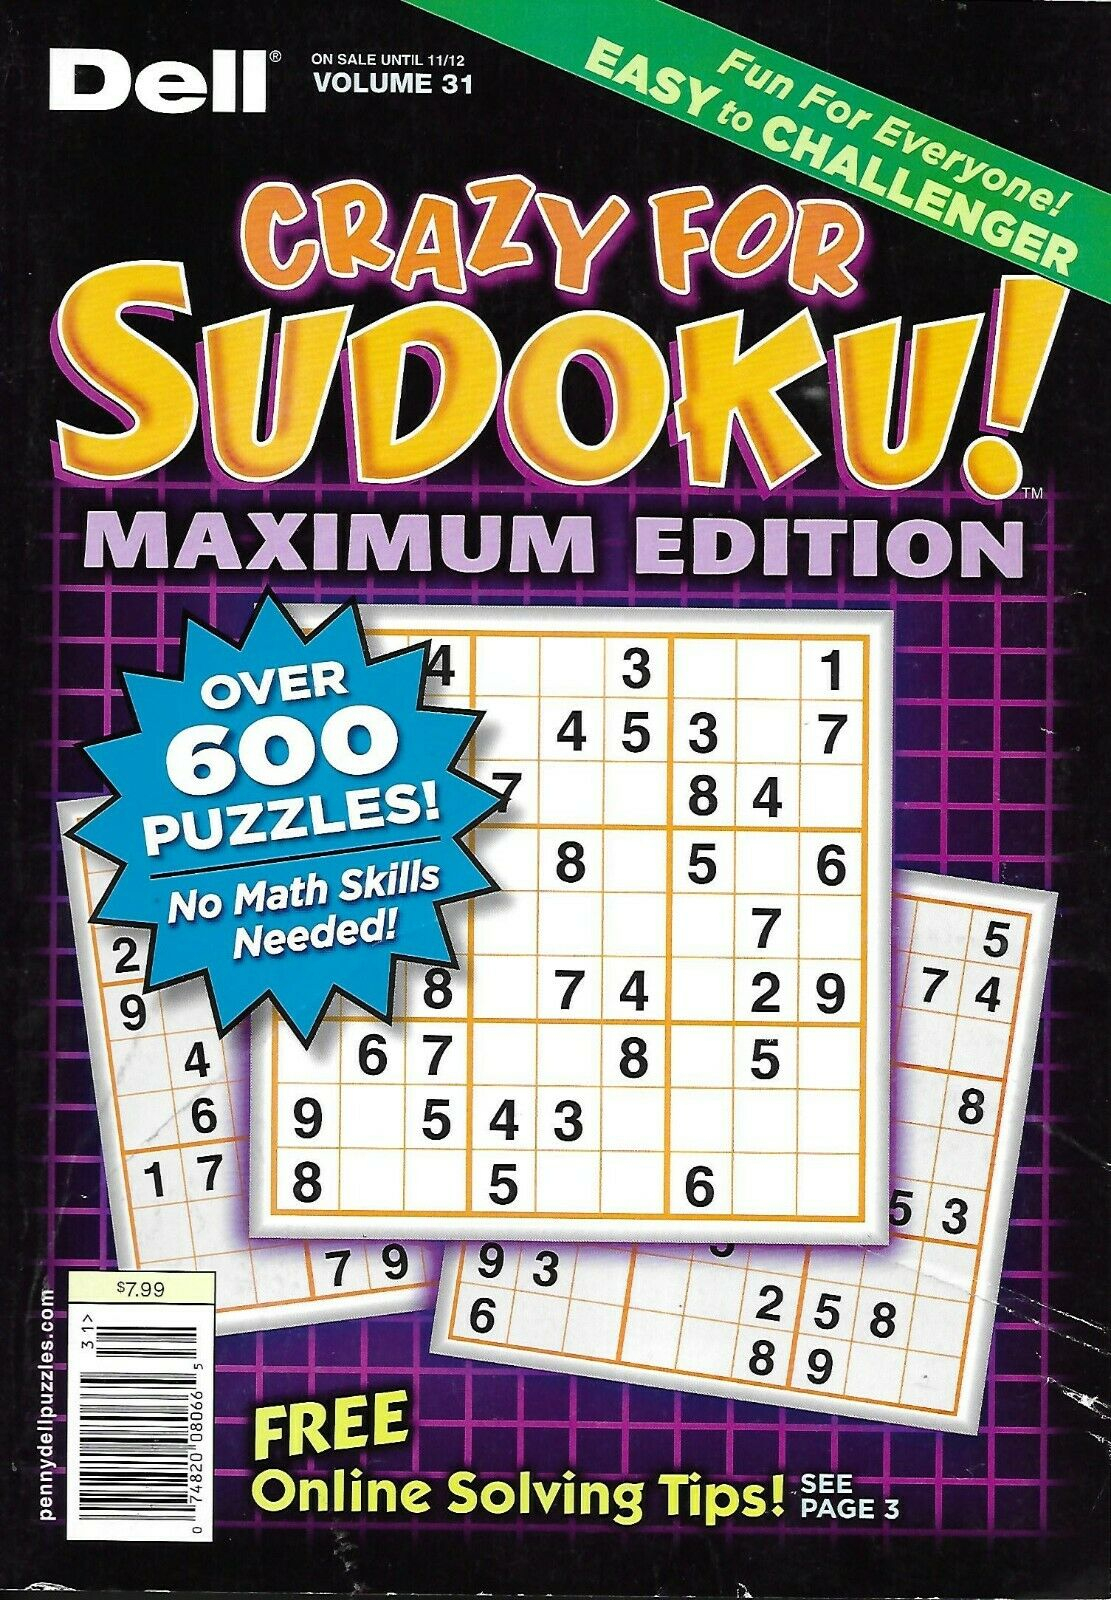 Dell Sudoku Magazine Over 600 Puzzles Easy Medium Hard Super Challenger 2012